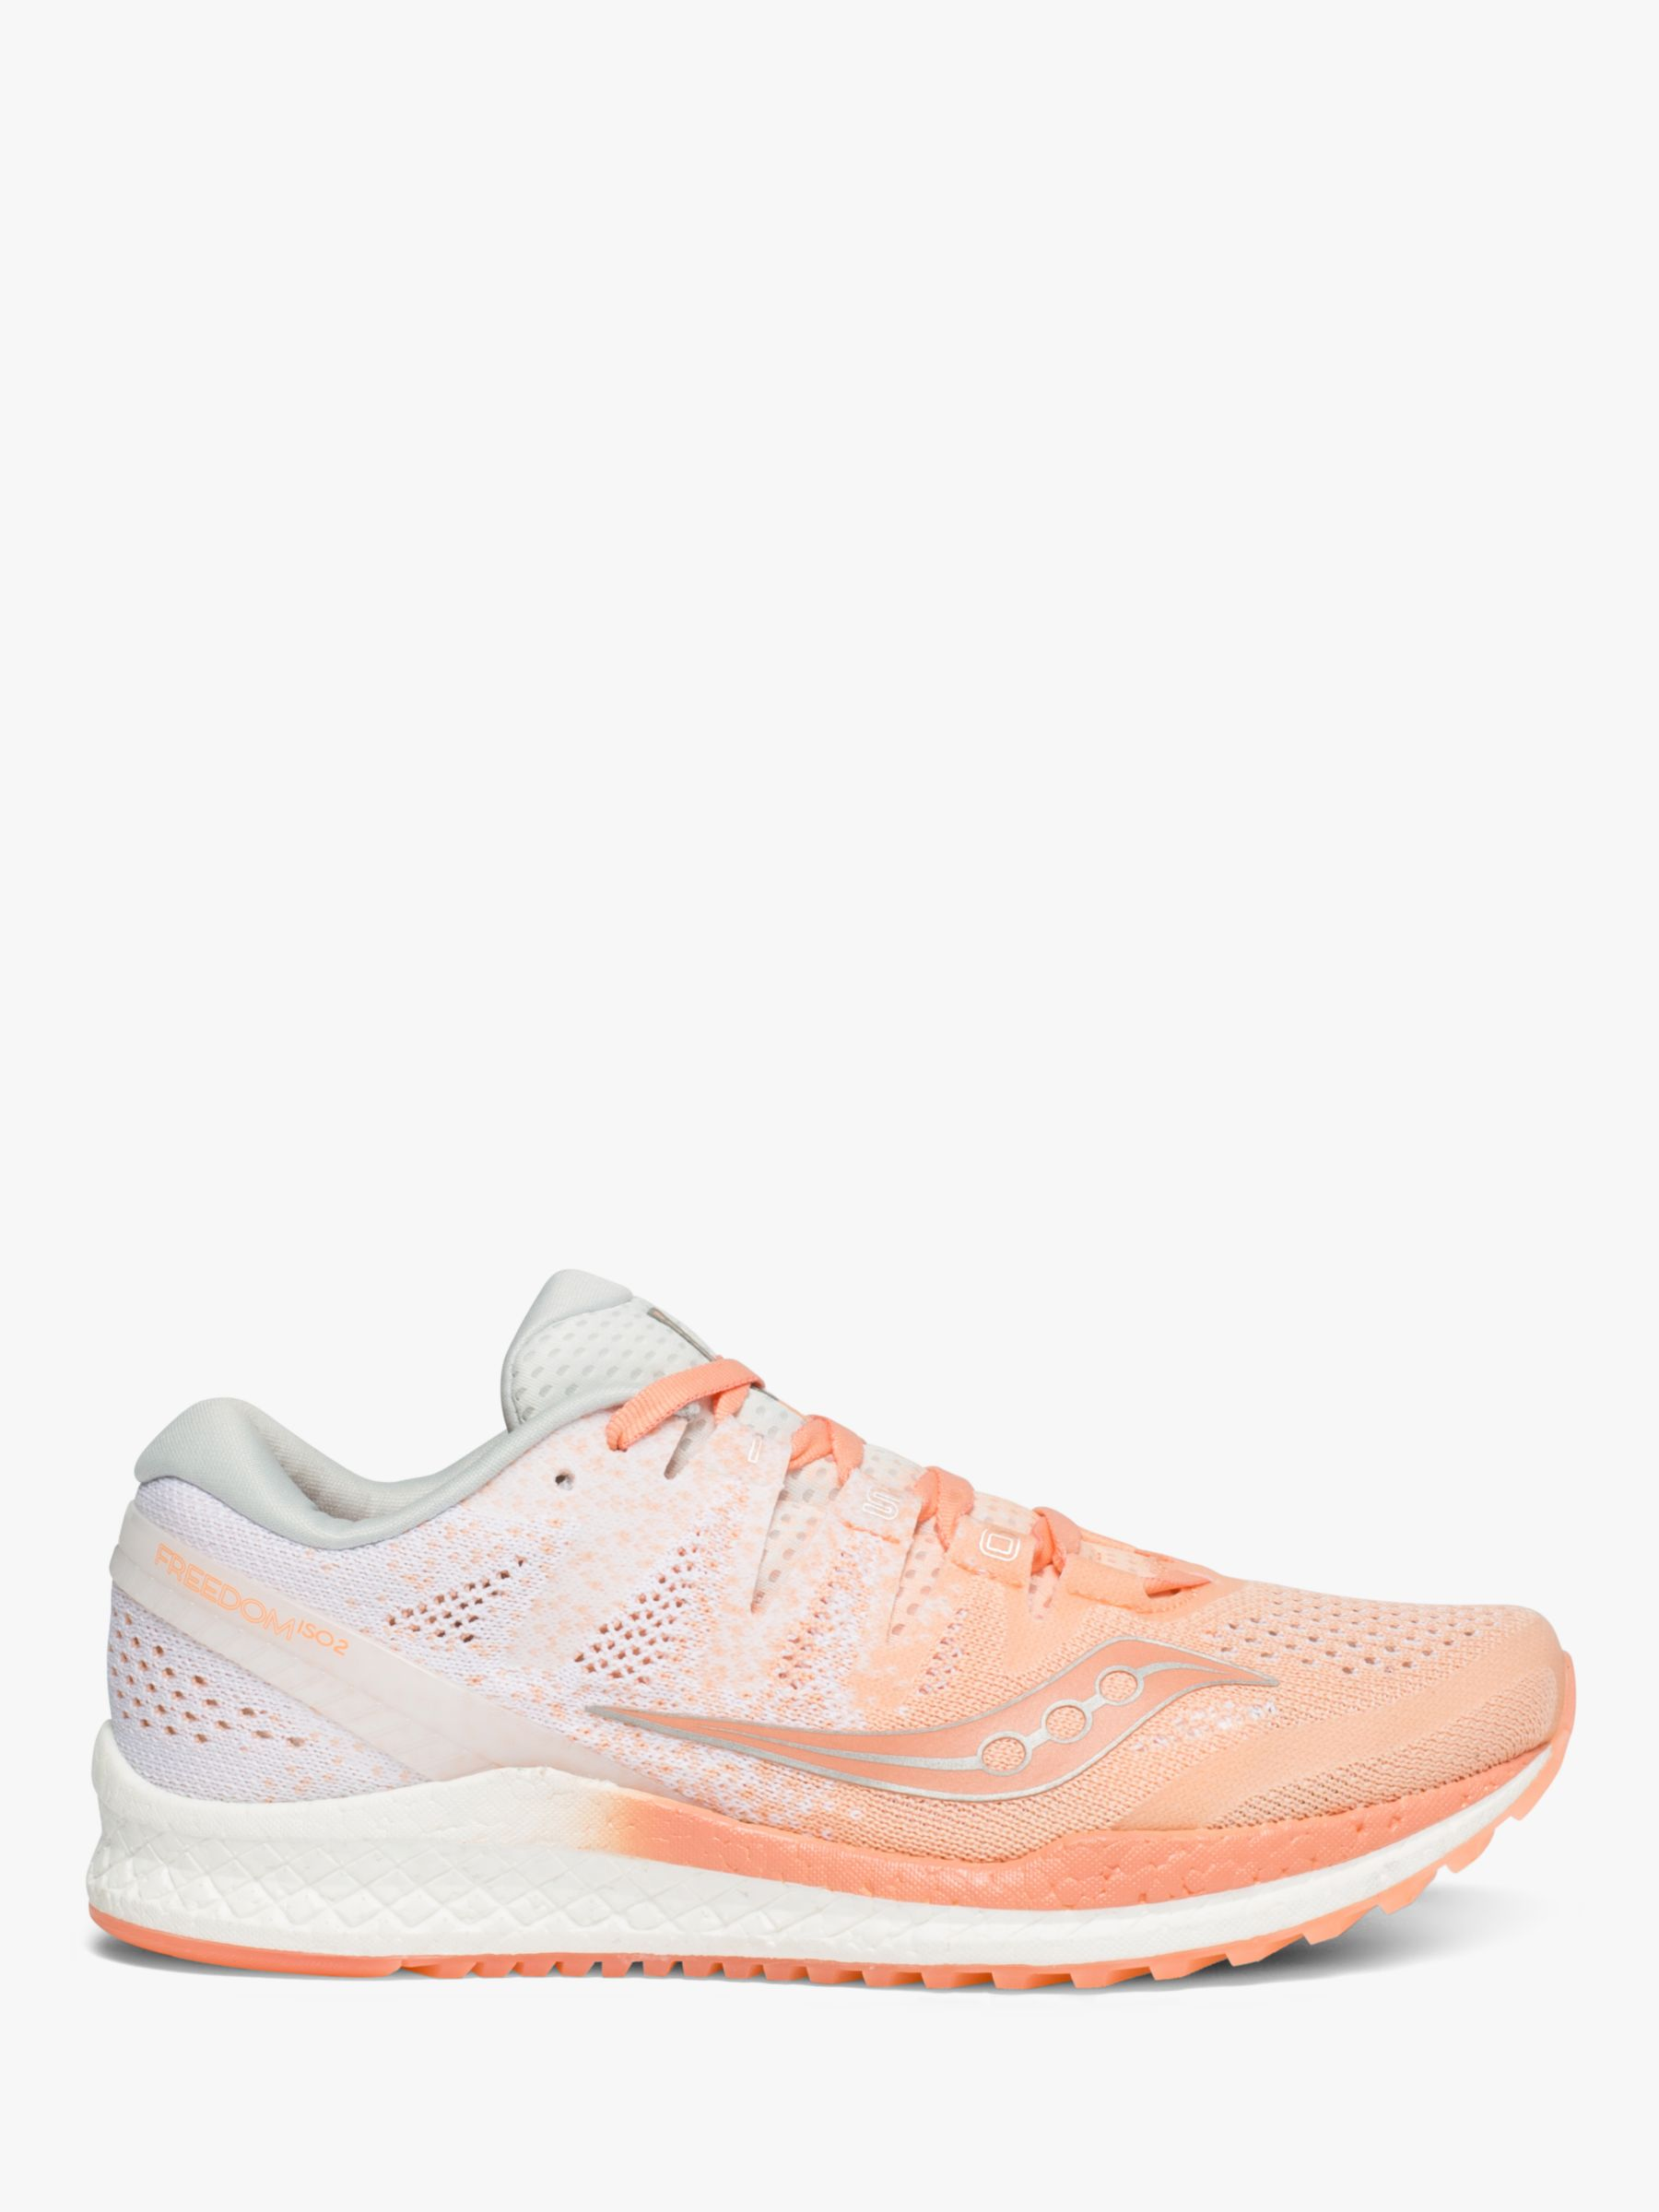 Saucony Saucony Freedom ISO 2 Women's Running Shoes, Peach/White